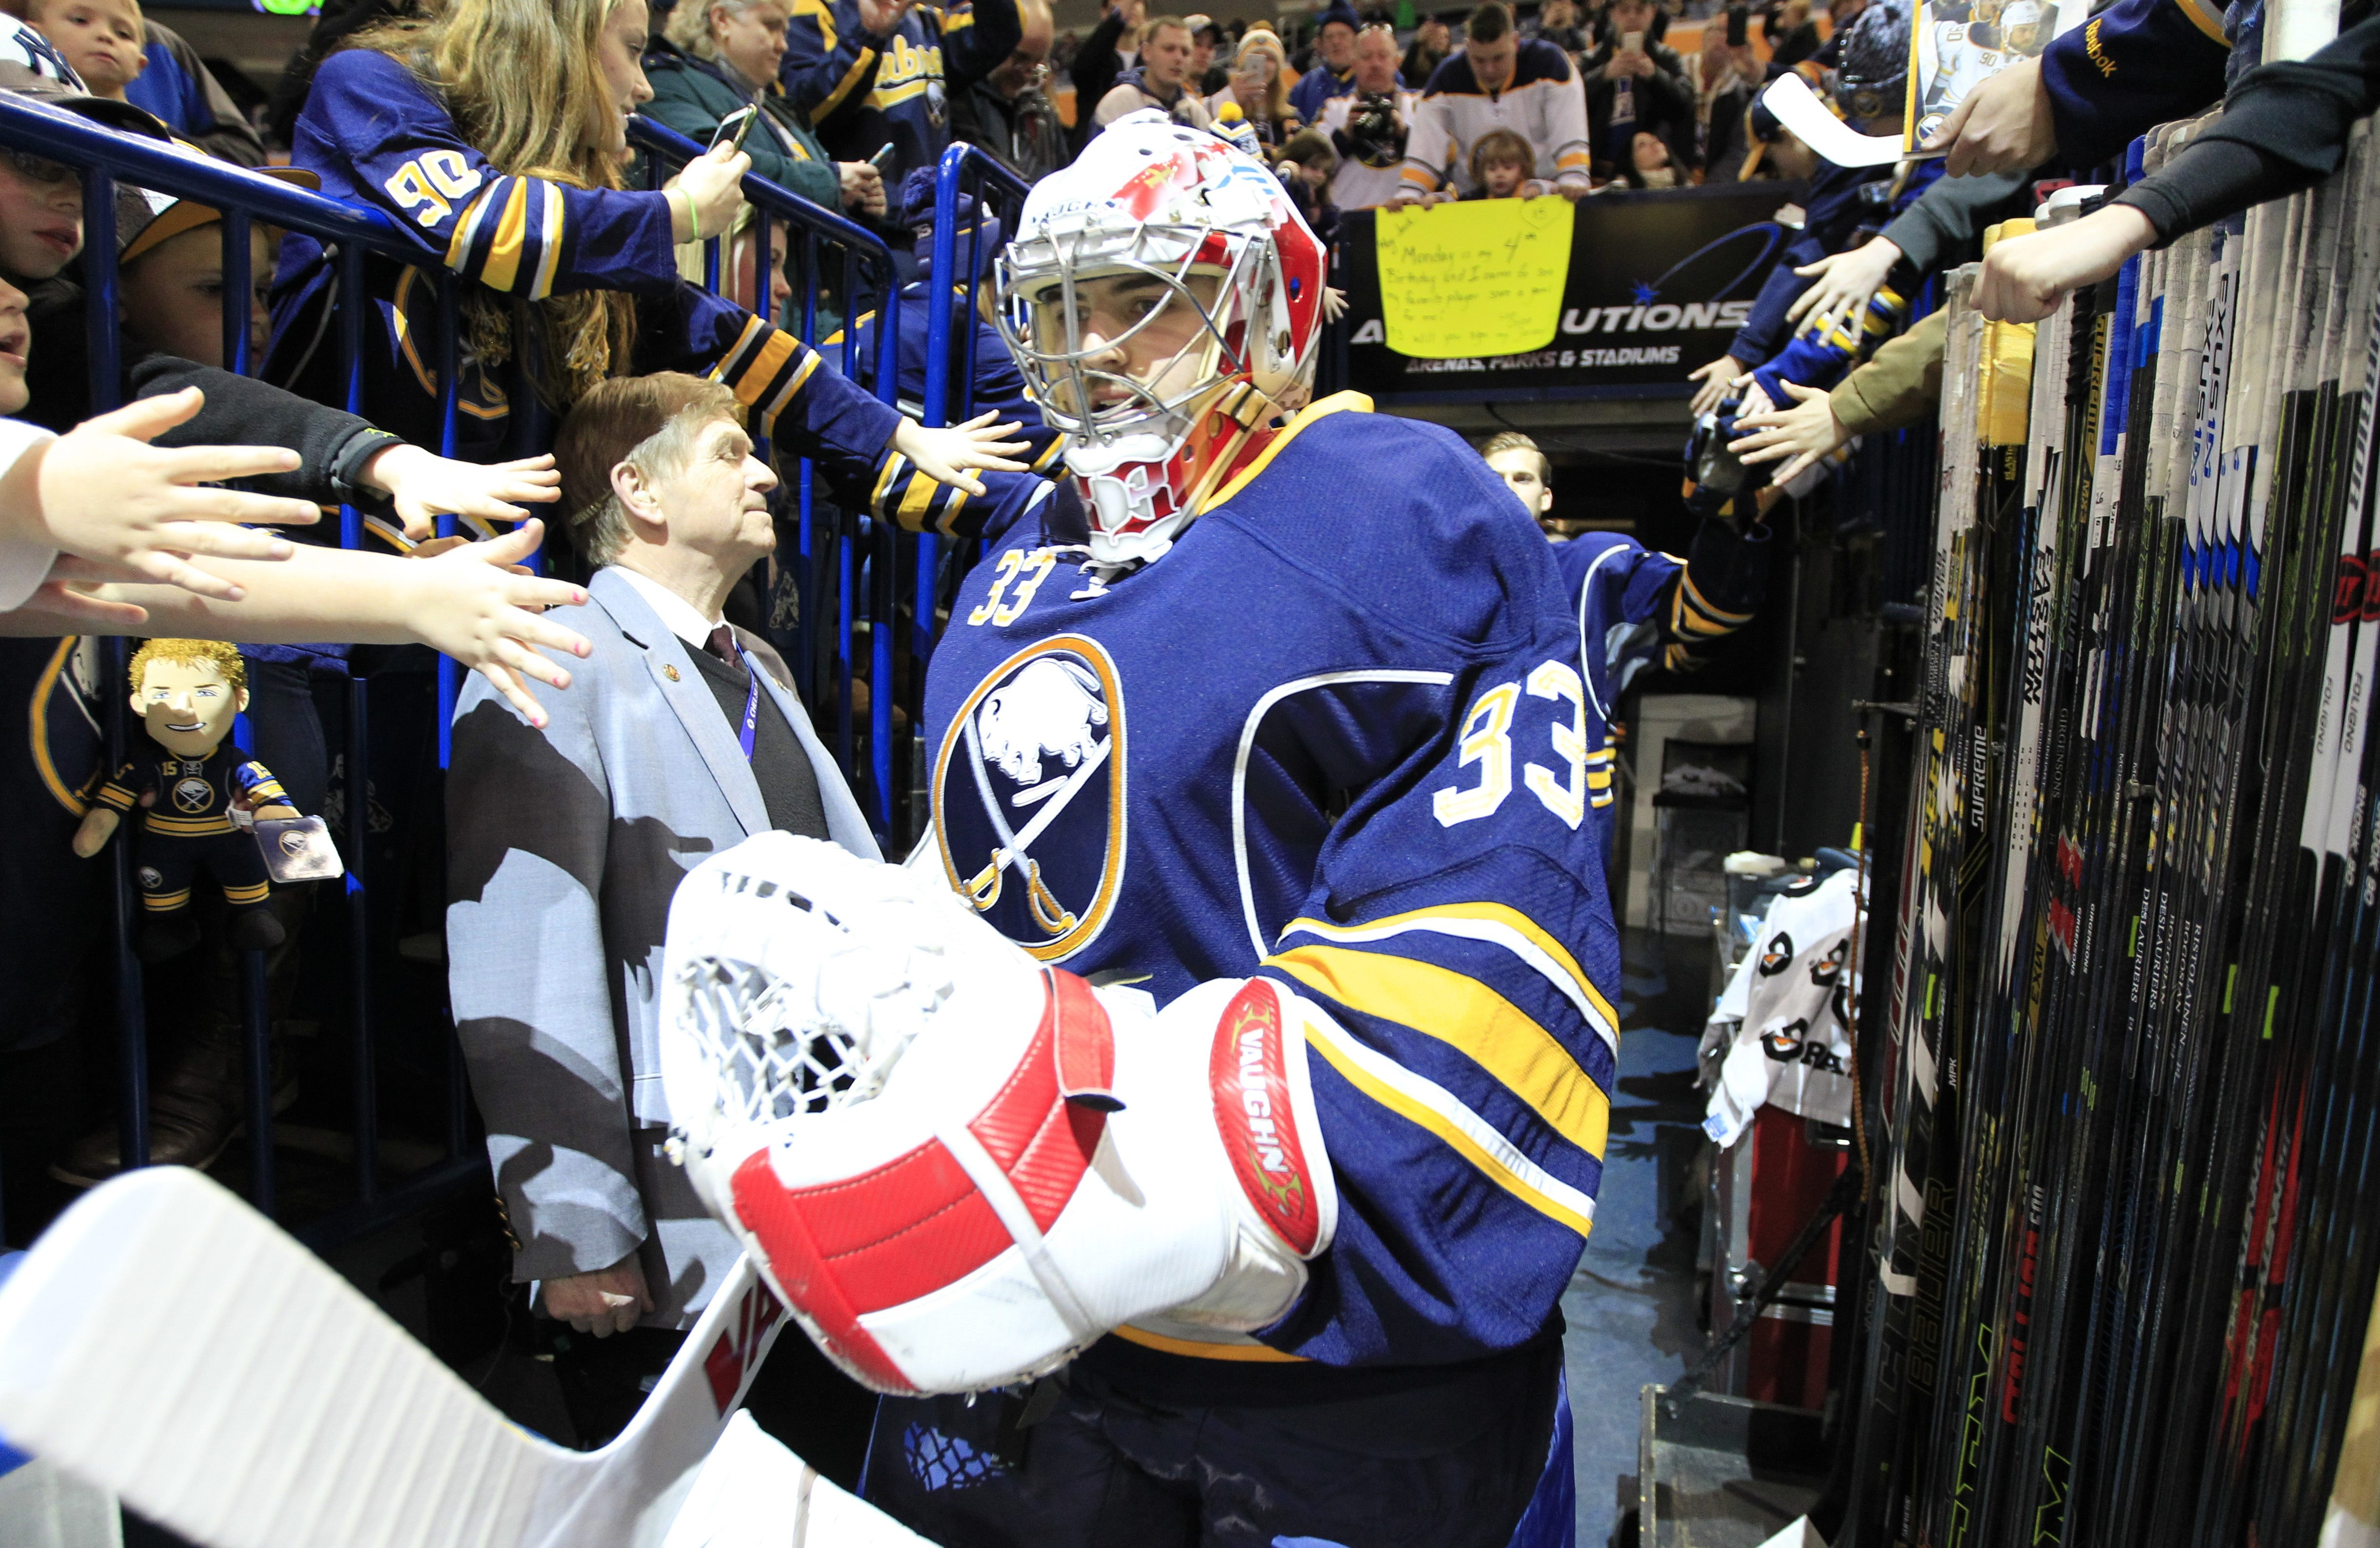 Jason Kasdorf was in goal for an NHL game for the first time when the Sabres played the Blue Jackets.